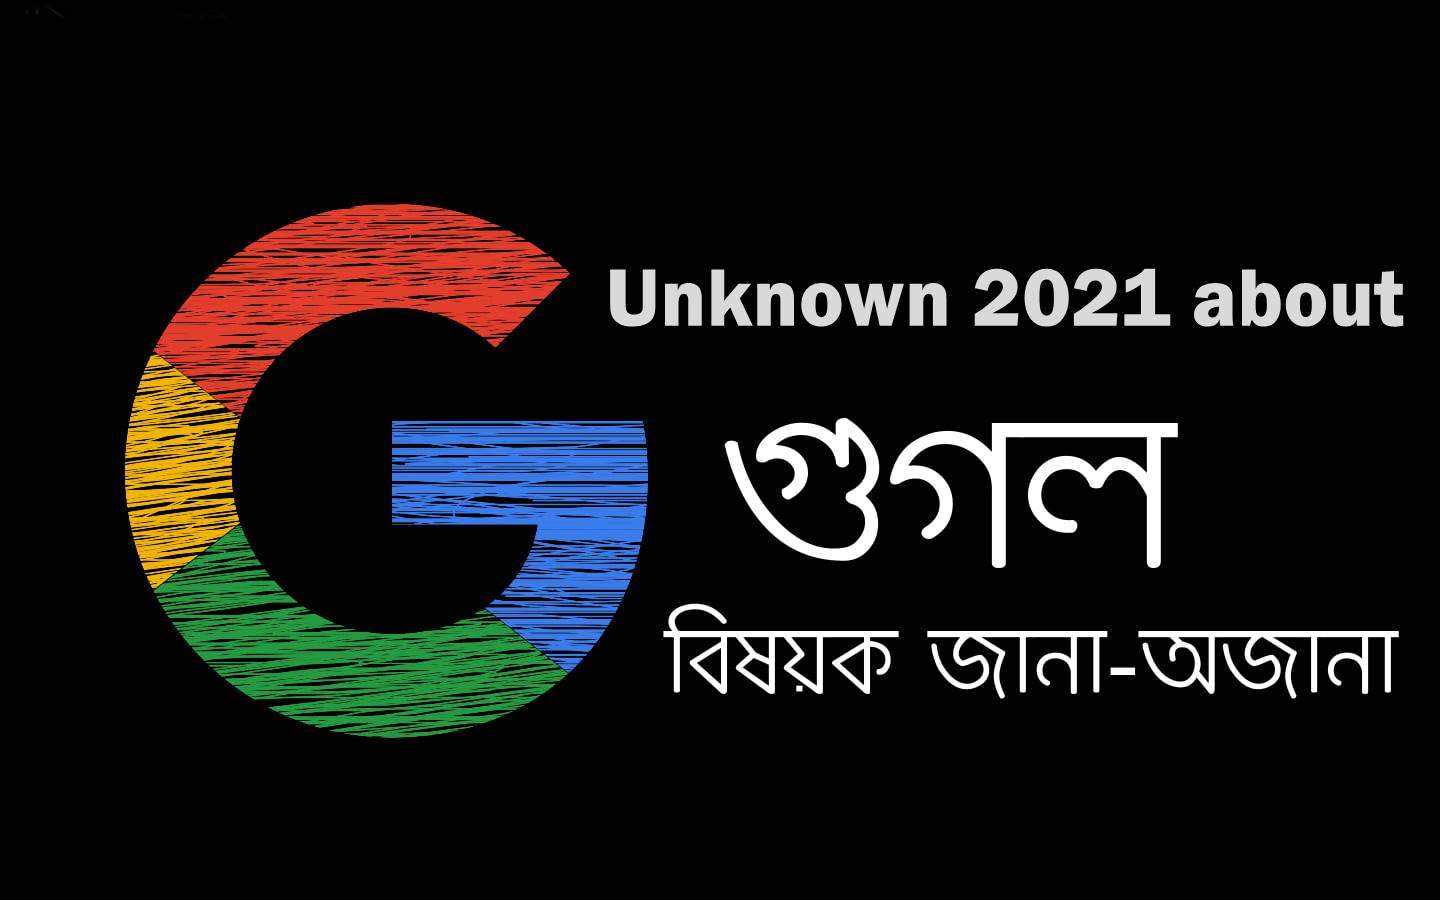 Unknown 2021 about Google